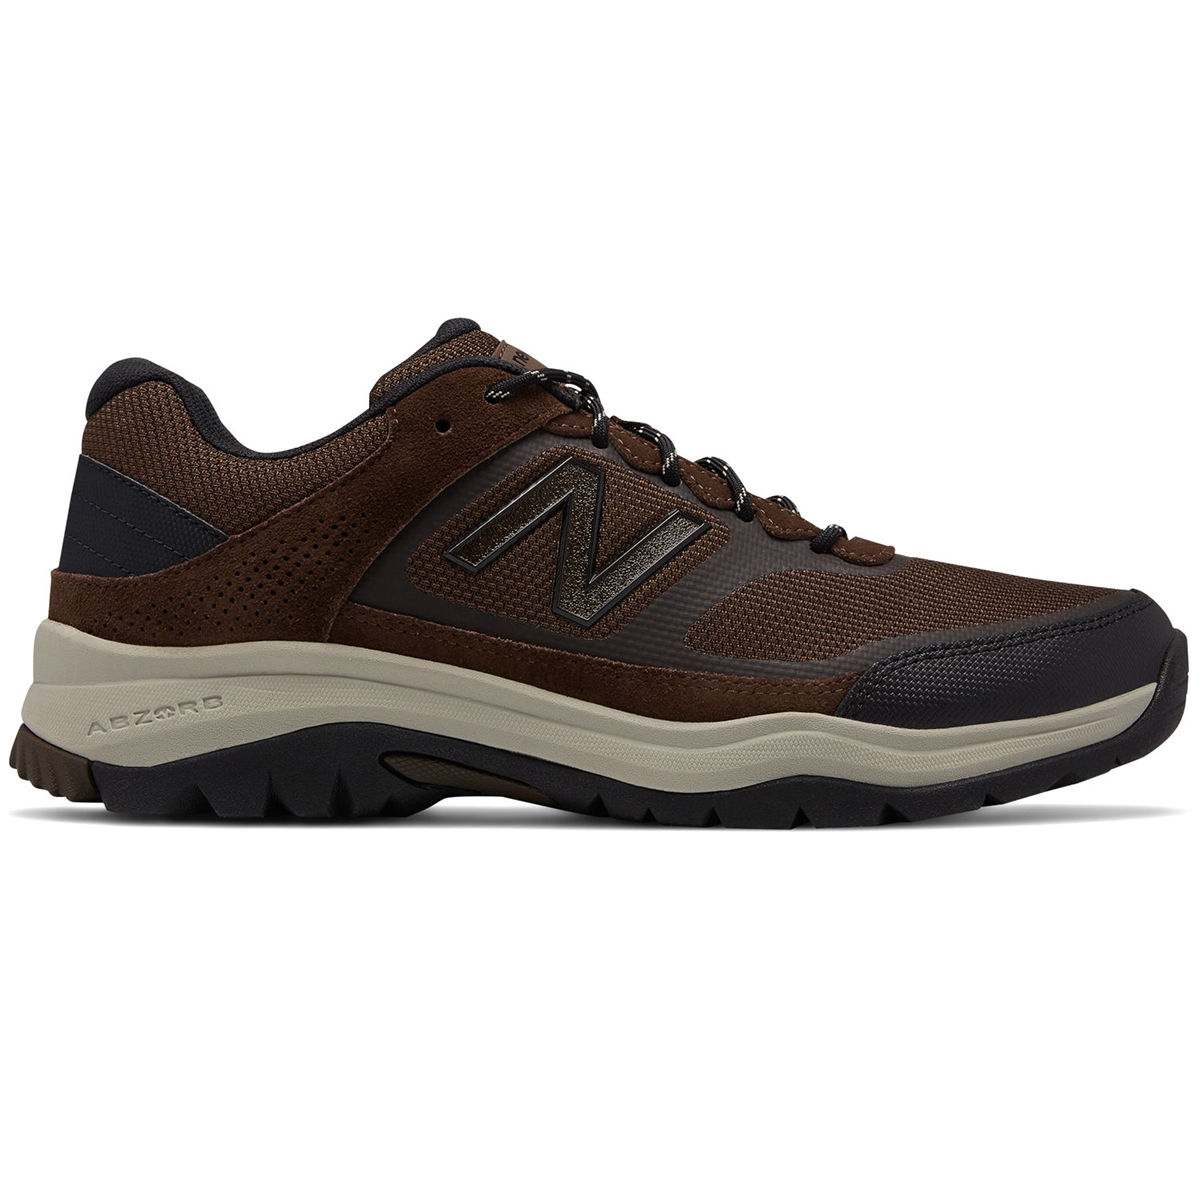 New Balance Men's 669 V1 Walking Shoes, Wide - Brown, 9.5